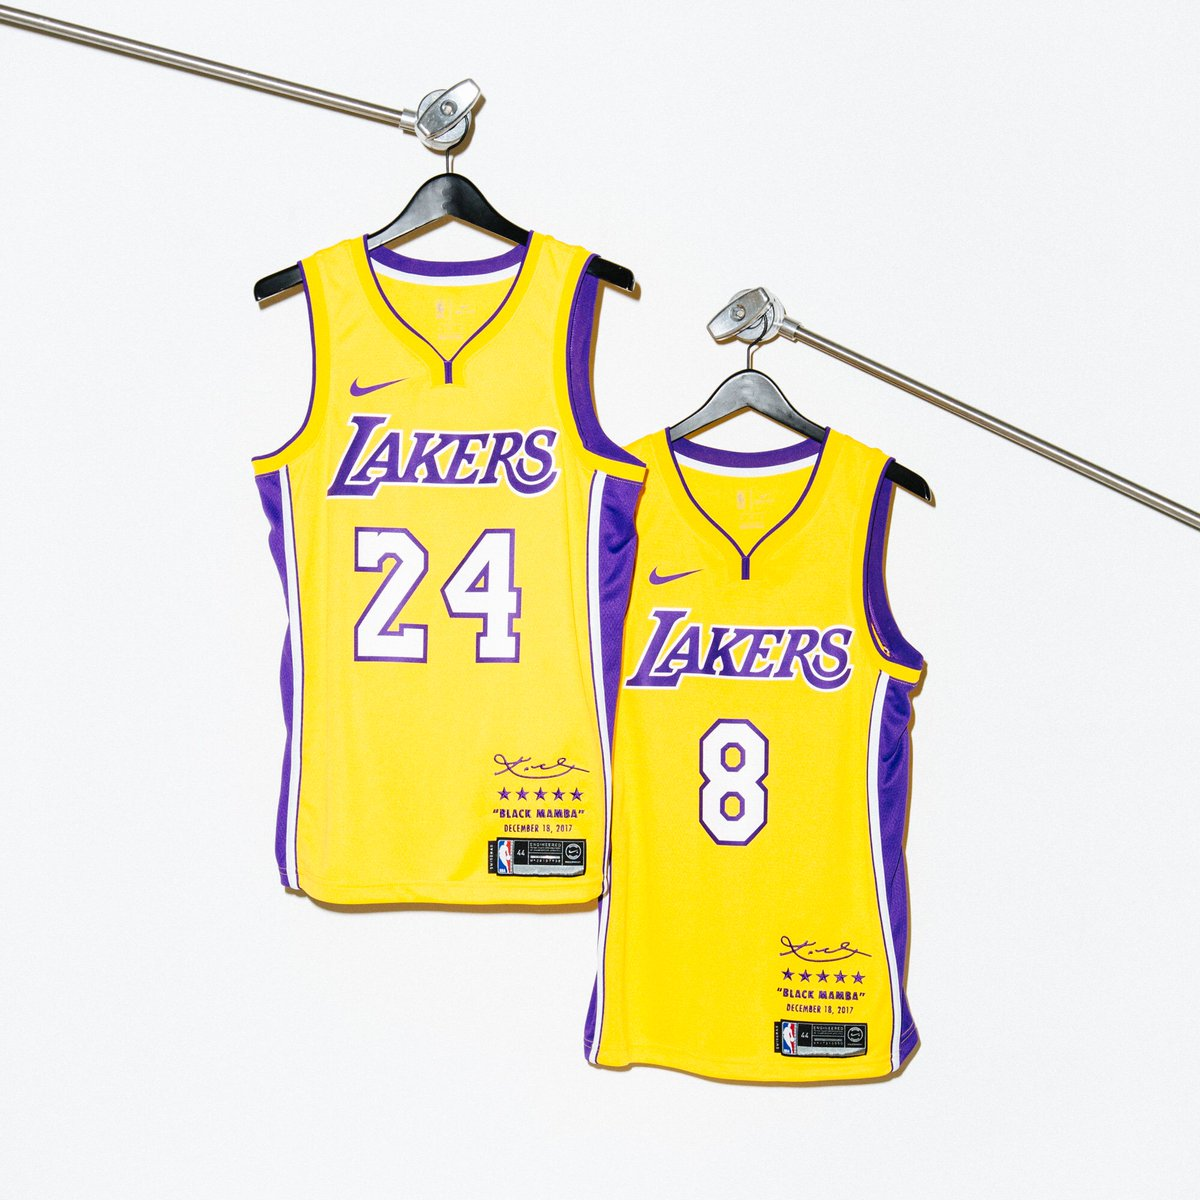 17dde7438 Nike x Kobe Bryant Limited Edition Retirement Jersey    Available Monday 12  18 at Undefeated La Brea.pic.twitter.com eUVgySTqHX